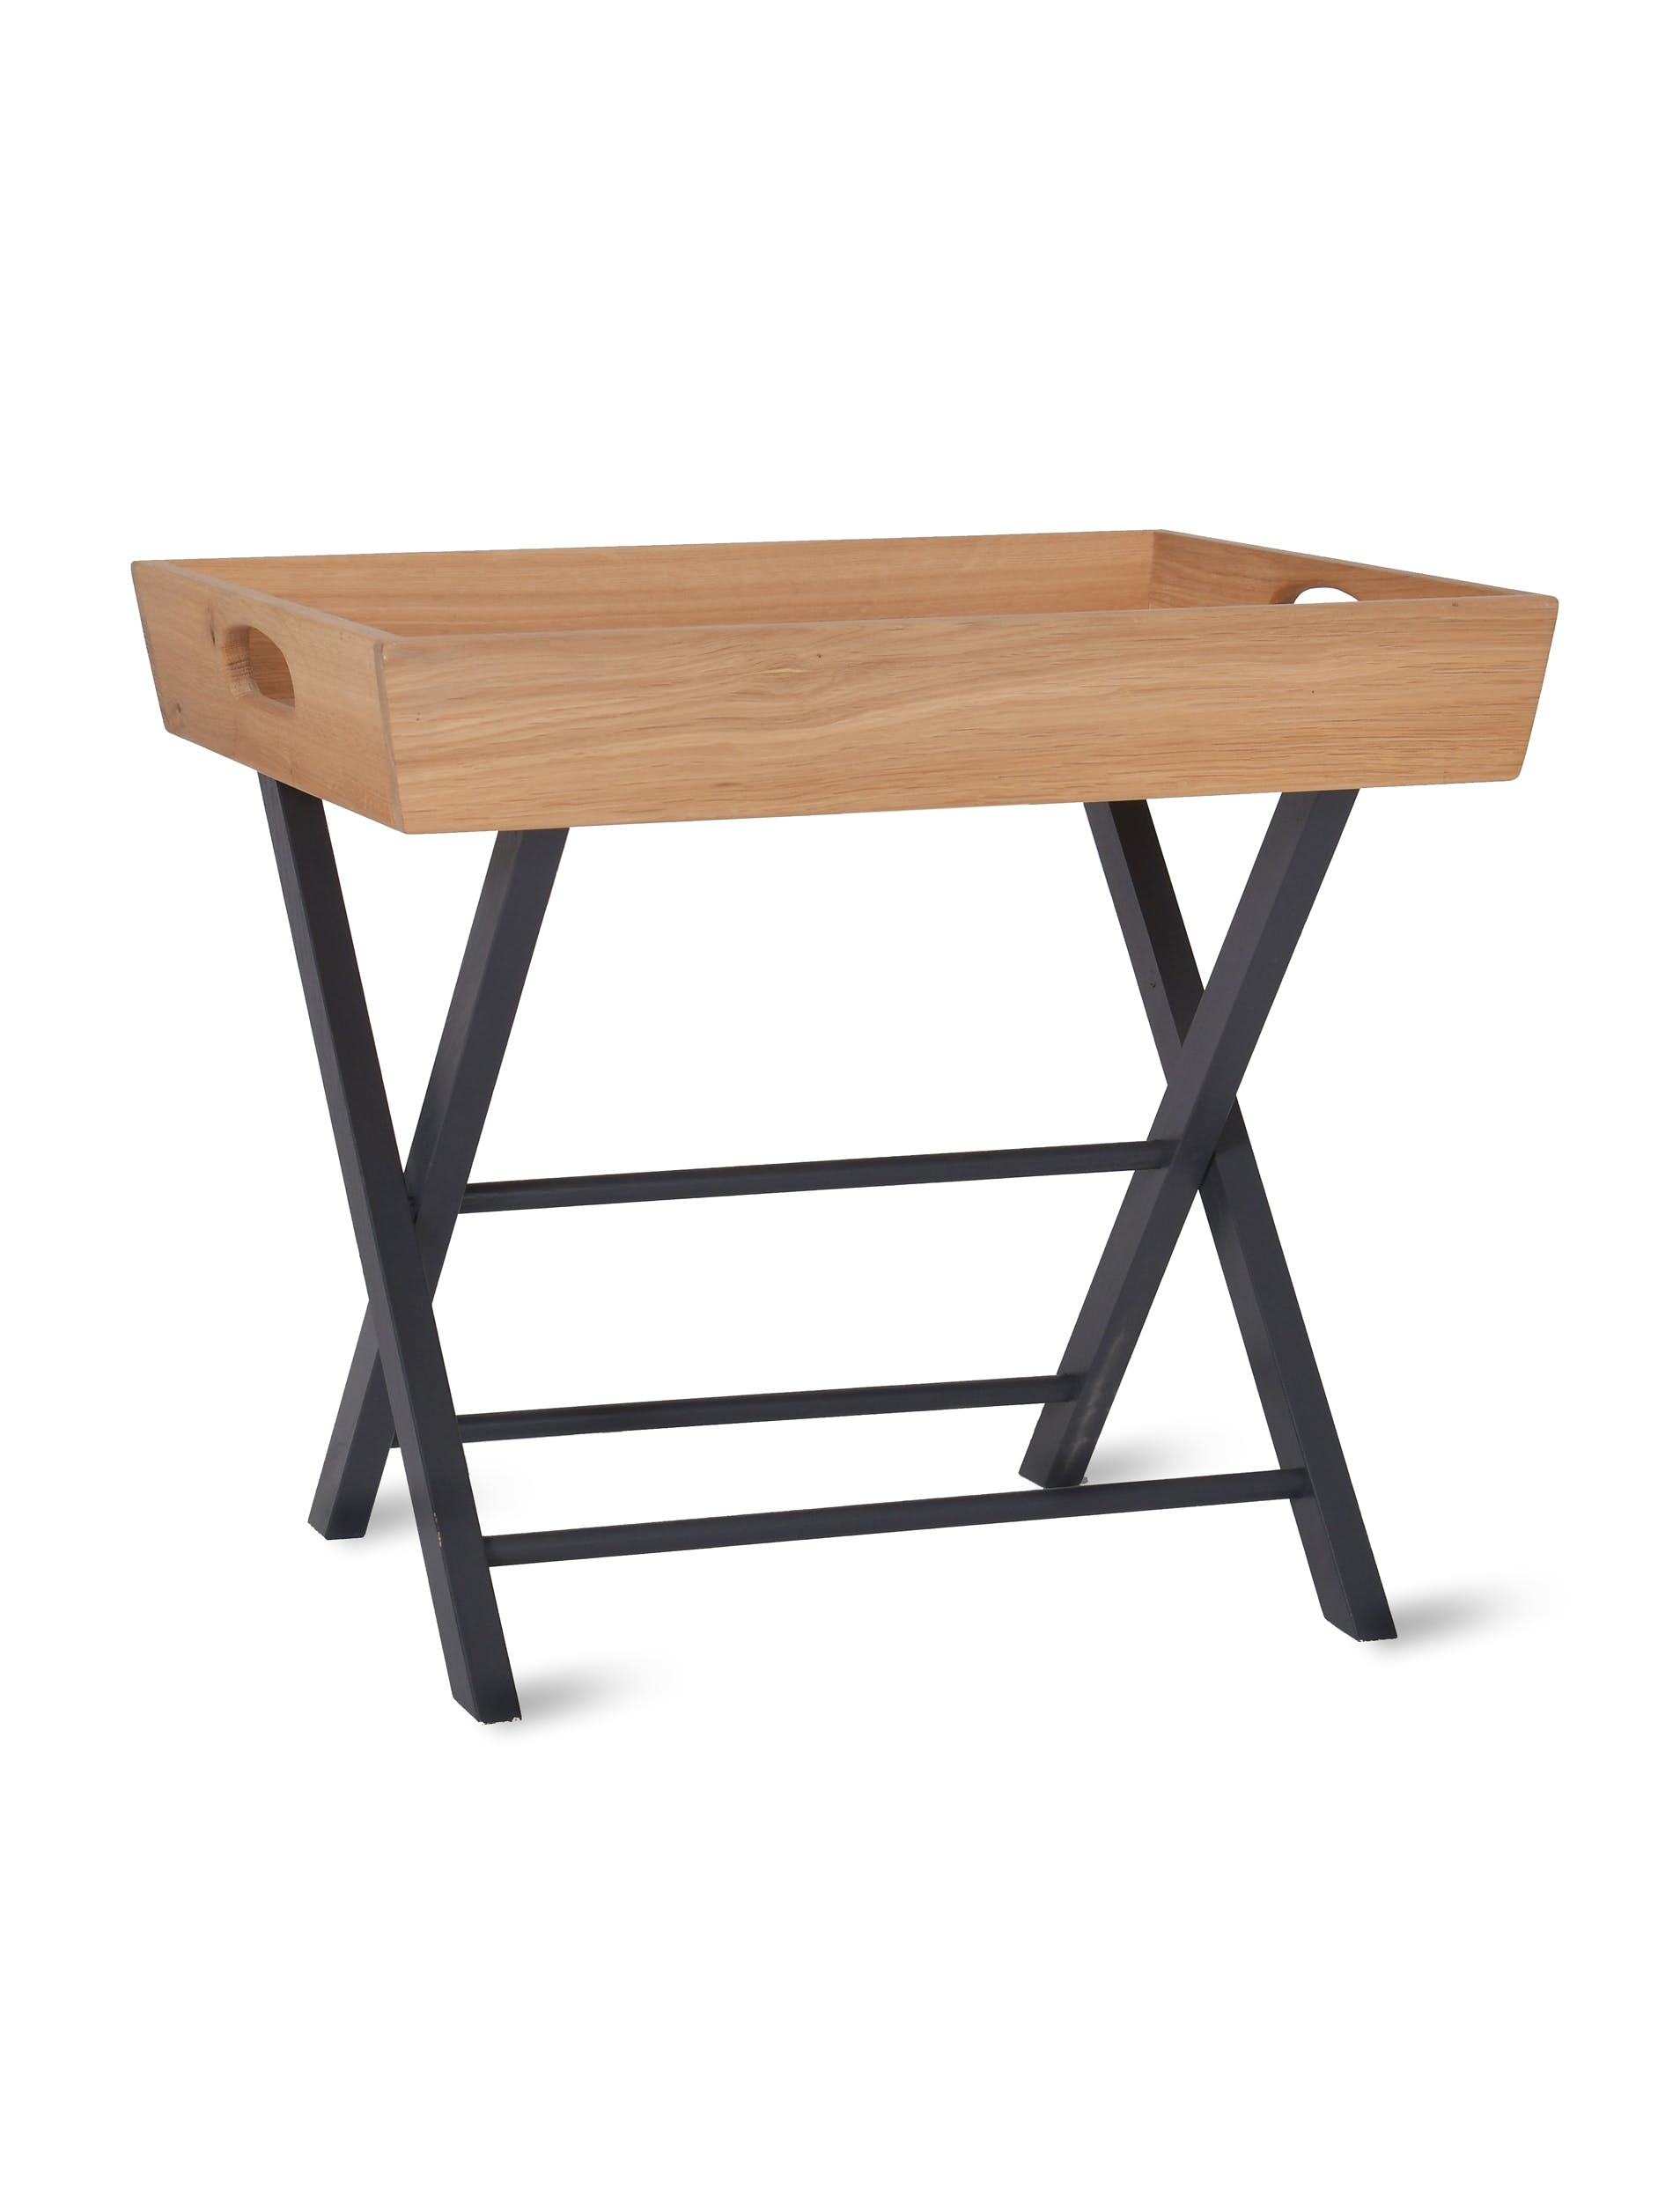 Oak Butlers Side Table in Black | Garden Trading